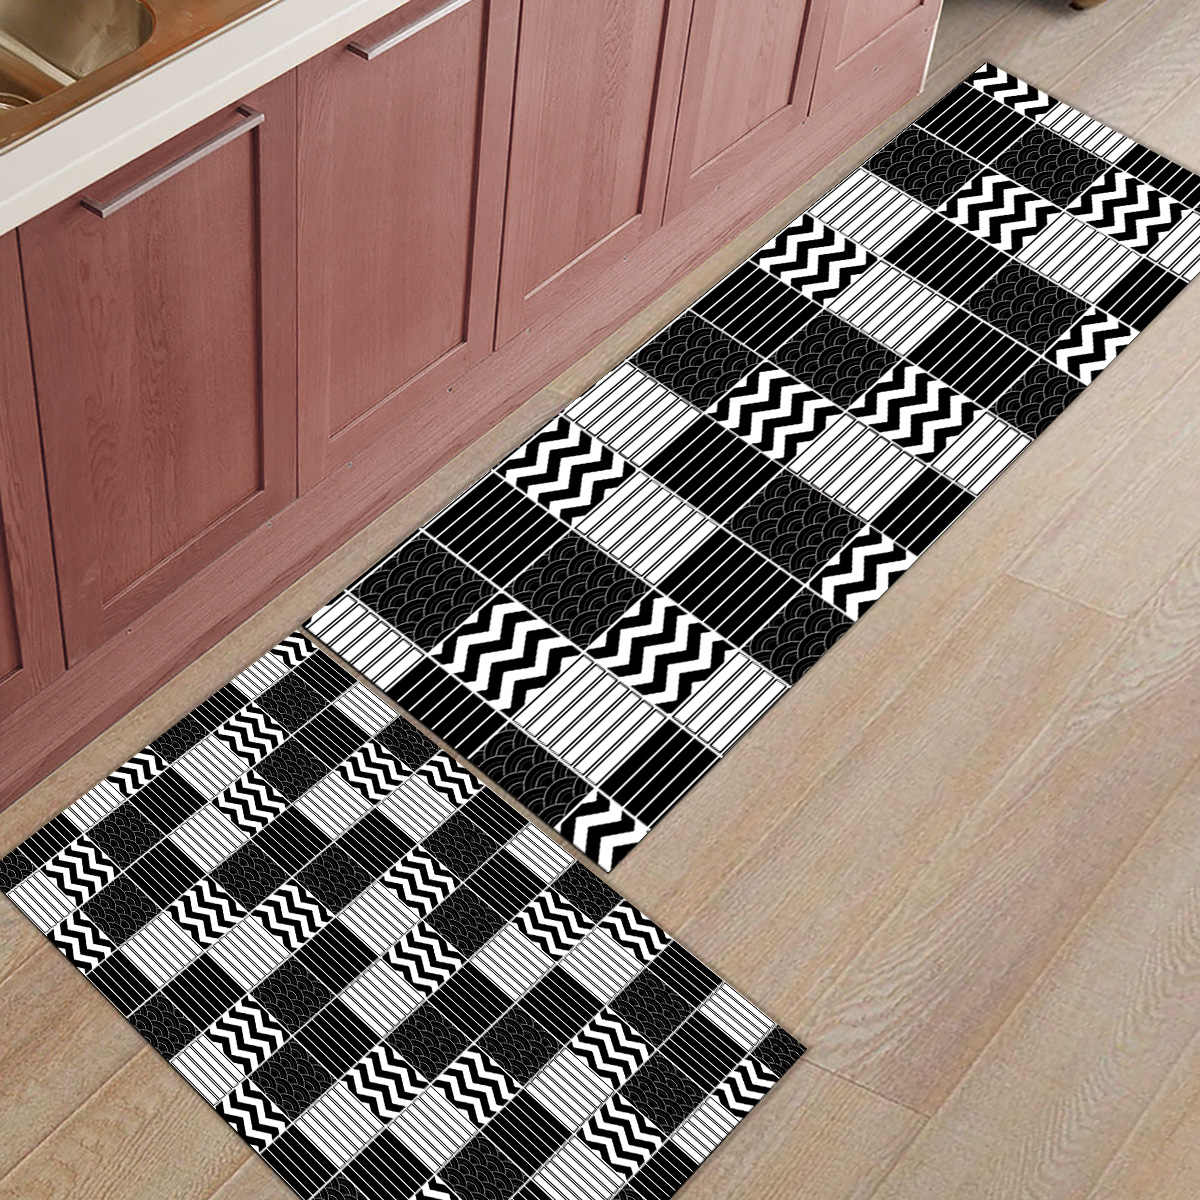 2 Piece Kitchen Mats And Rugs Set Modern Black Traditional Japanese Pattern Wave Home Deocr Non Skid Area Runner Doormats Carpet